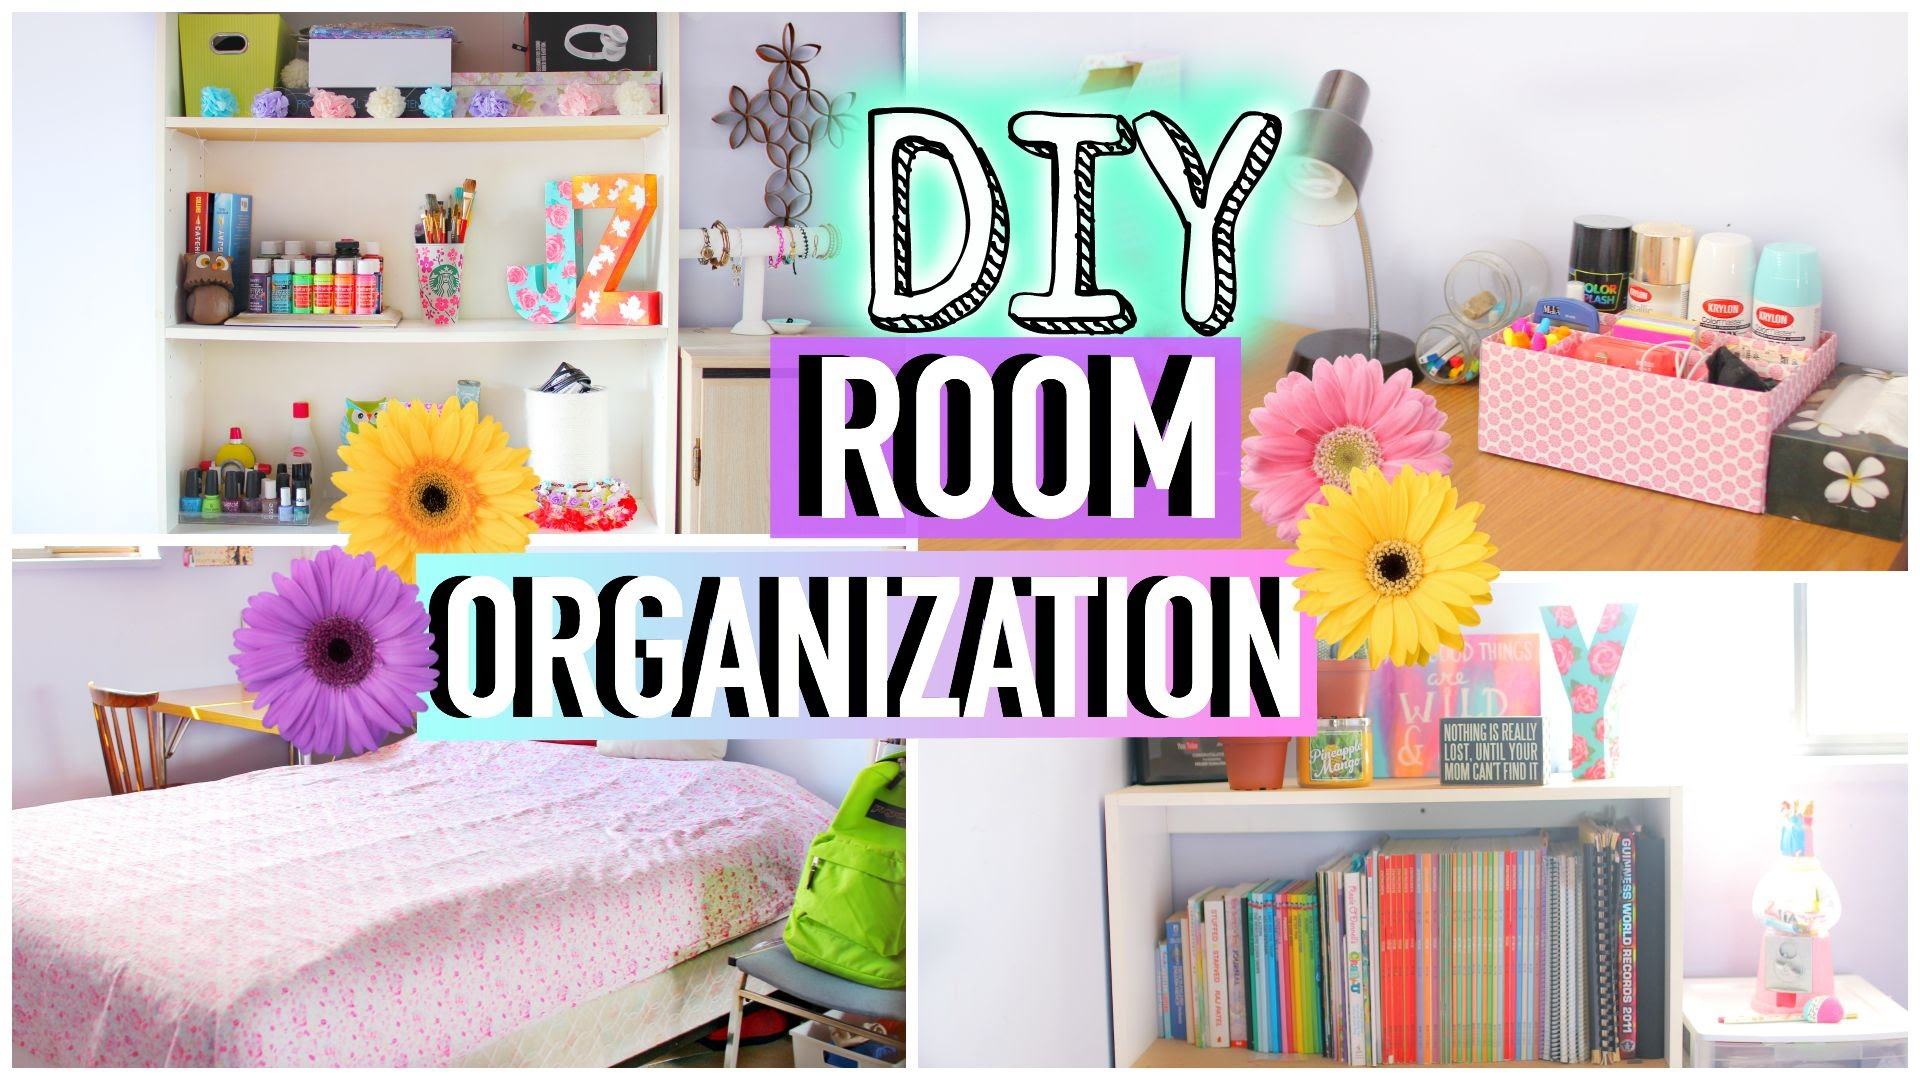 Diy room organization and storage ideas how to clean for Room organization